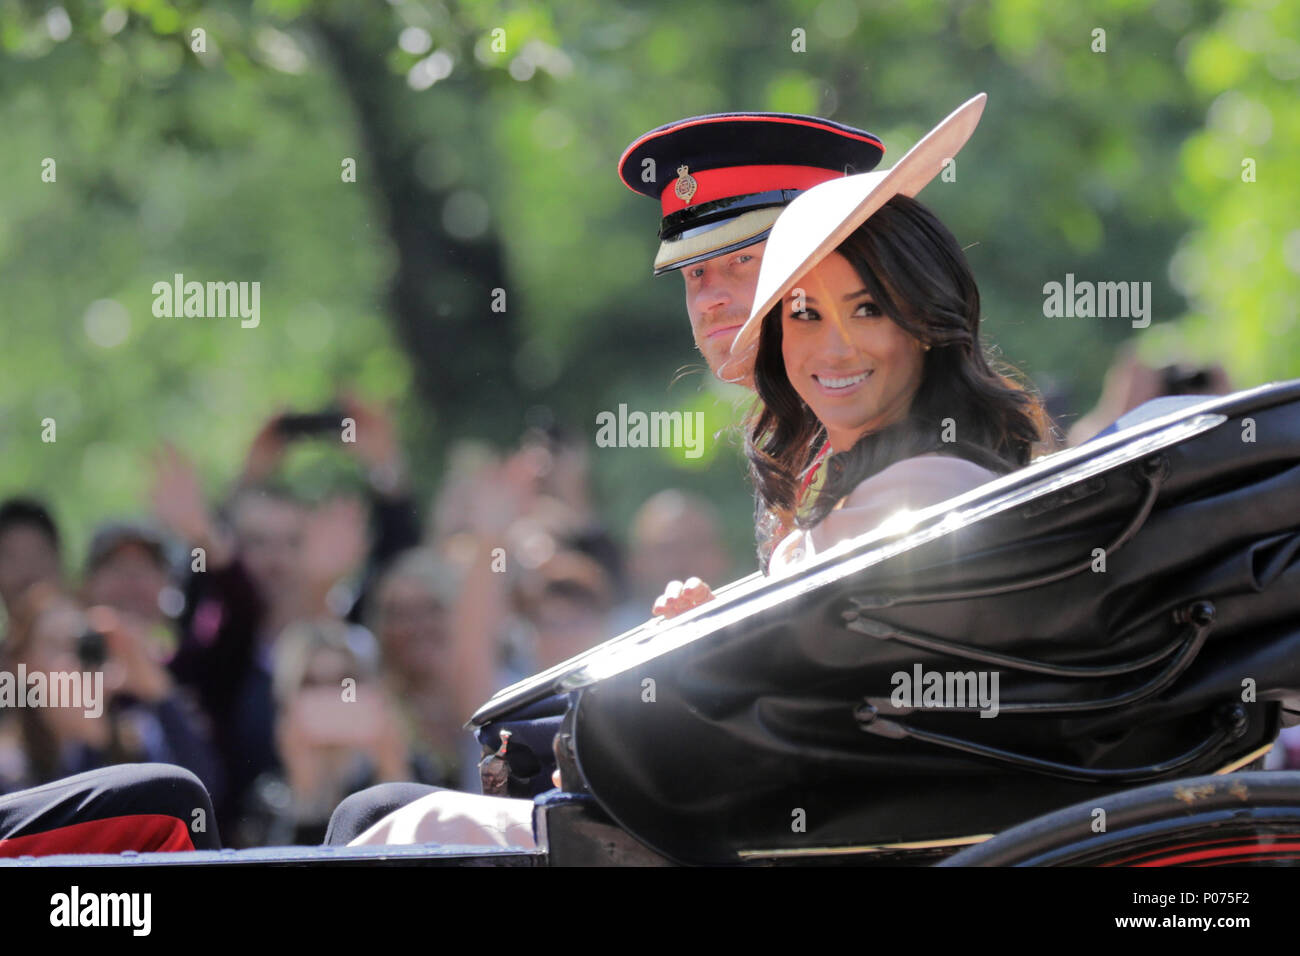 London, UK, 9 June 2018.  Meghan, Duchess of Sussex, attends her first Trooping the Colour Queens Birthday Parade, seated alongside her husband, HRH Prince Harry, Duke of Sussex Credit: amanda rose/Alamy Live News Stock Photo